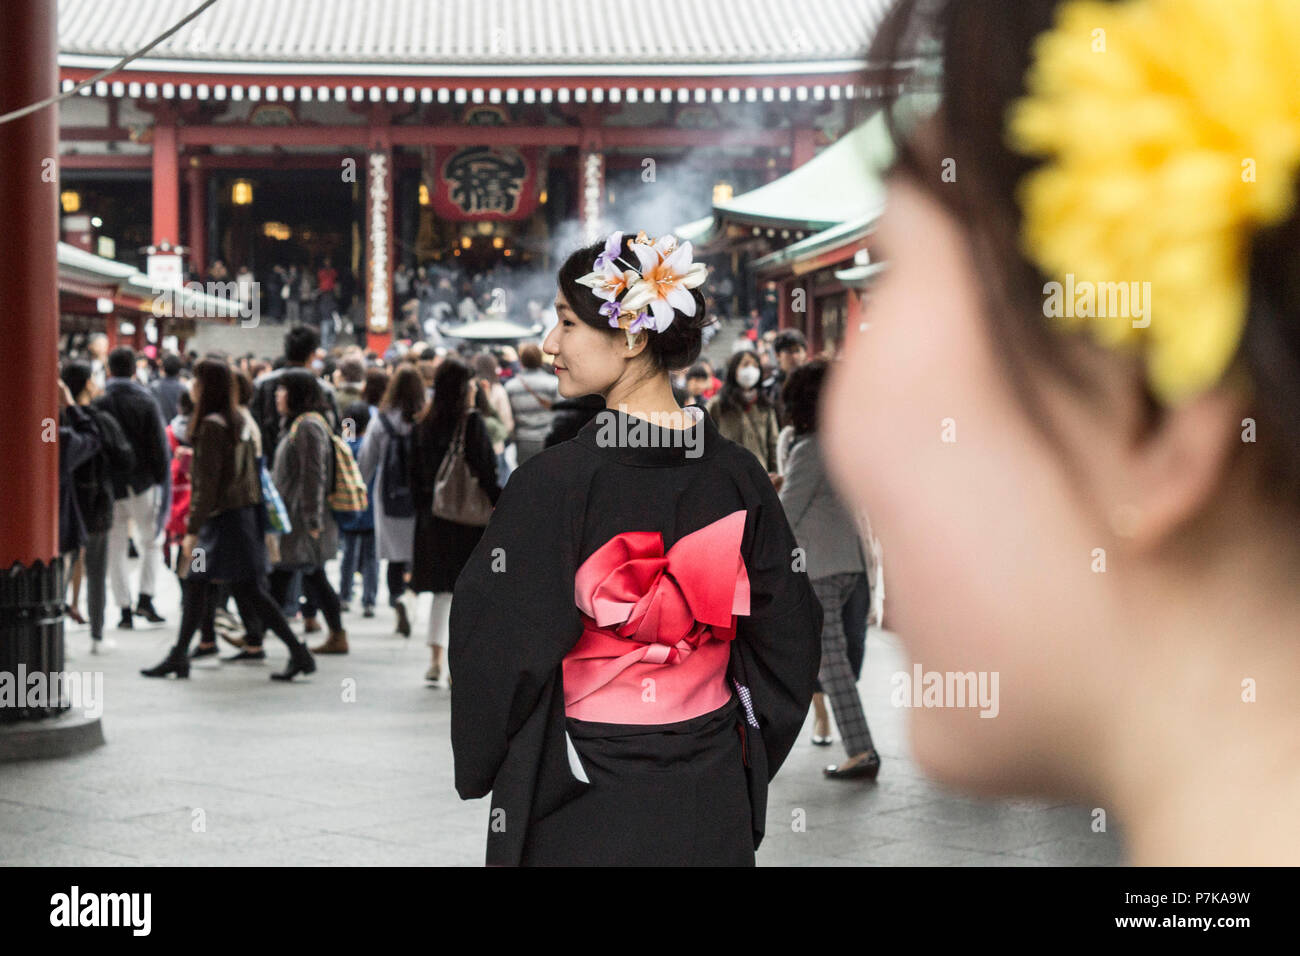 A young lady in a traditional robe in a temple in Tokyo - Stock Image